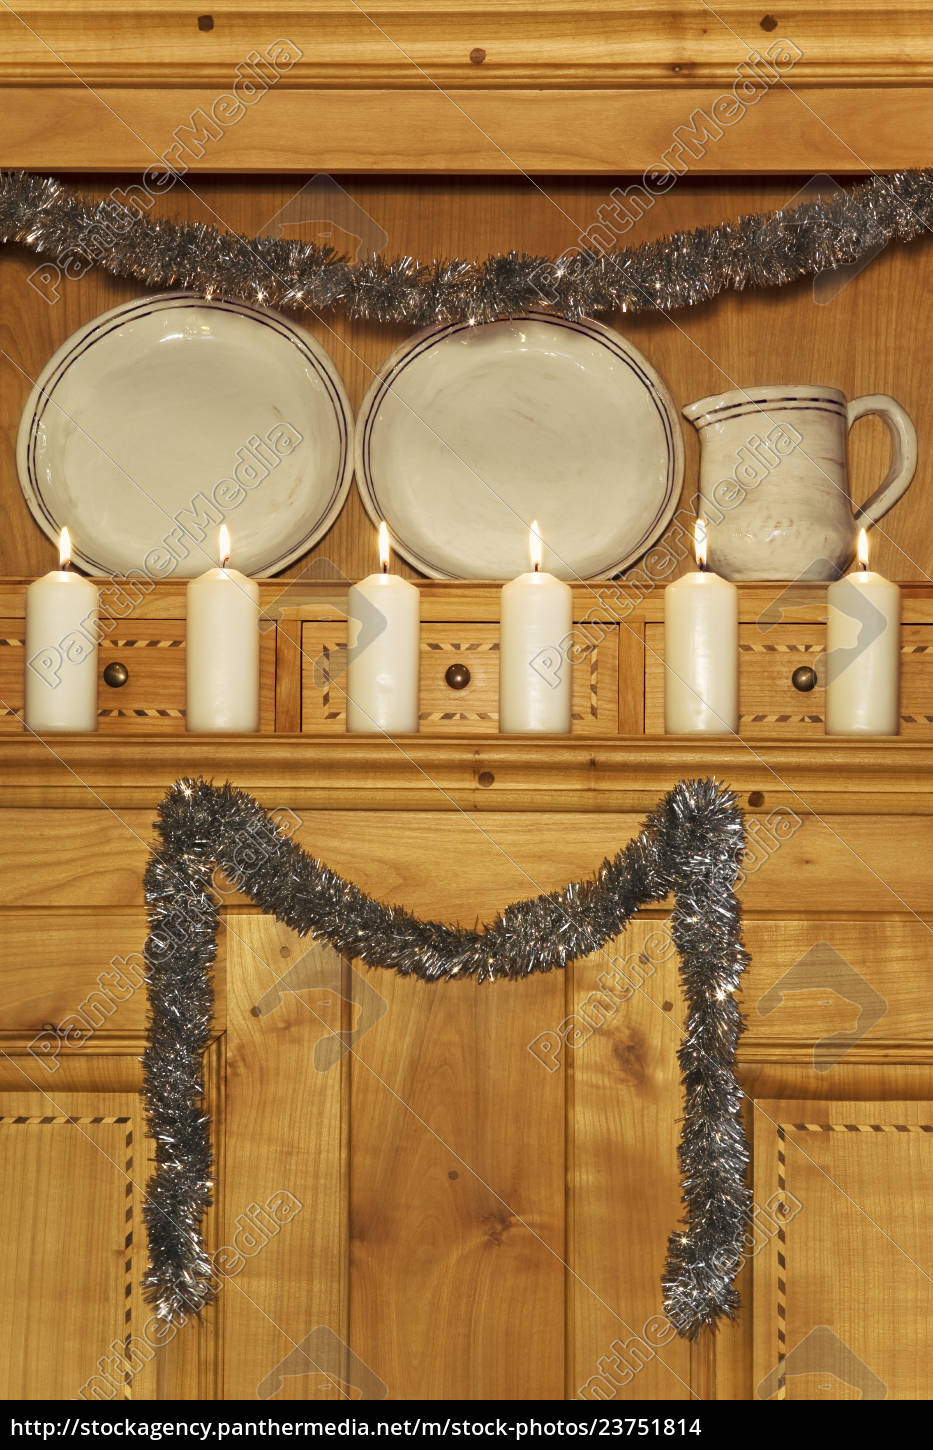 burning, white, candles, on, a, cabinet - 23751814